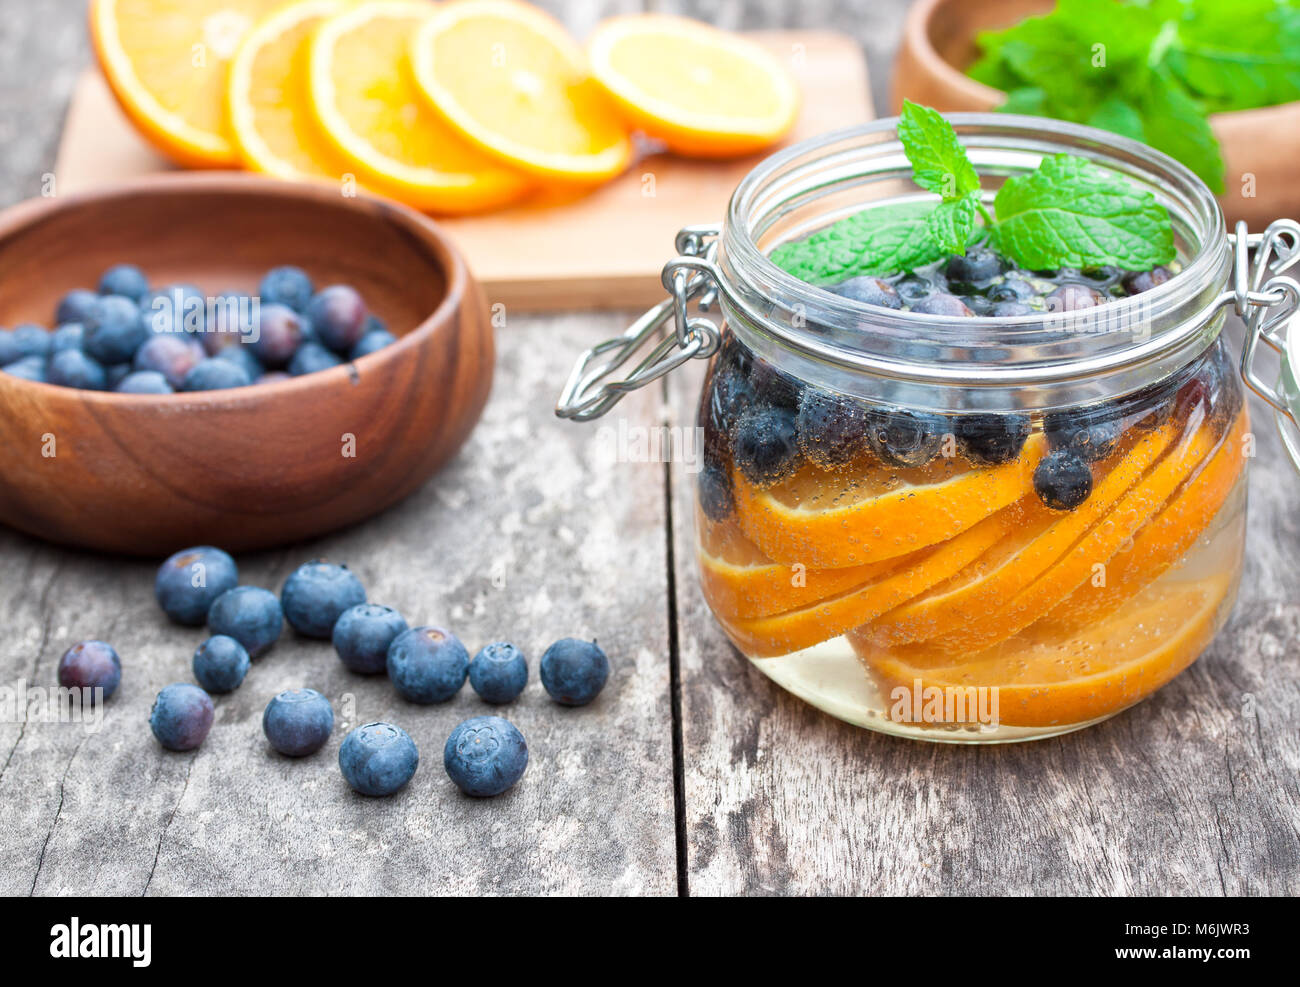 homemade  fruit drink with berries oranges and mint - Stock Image